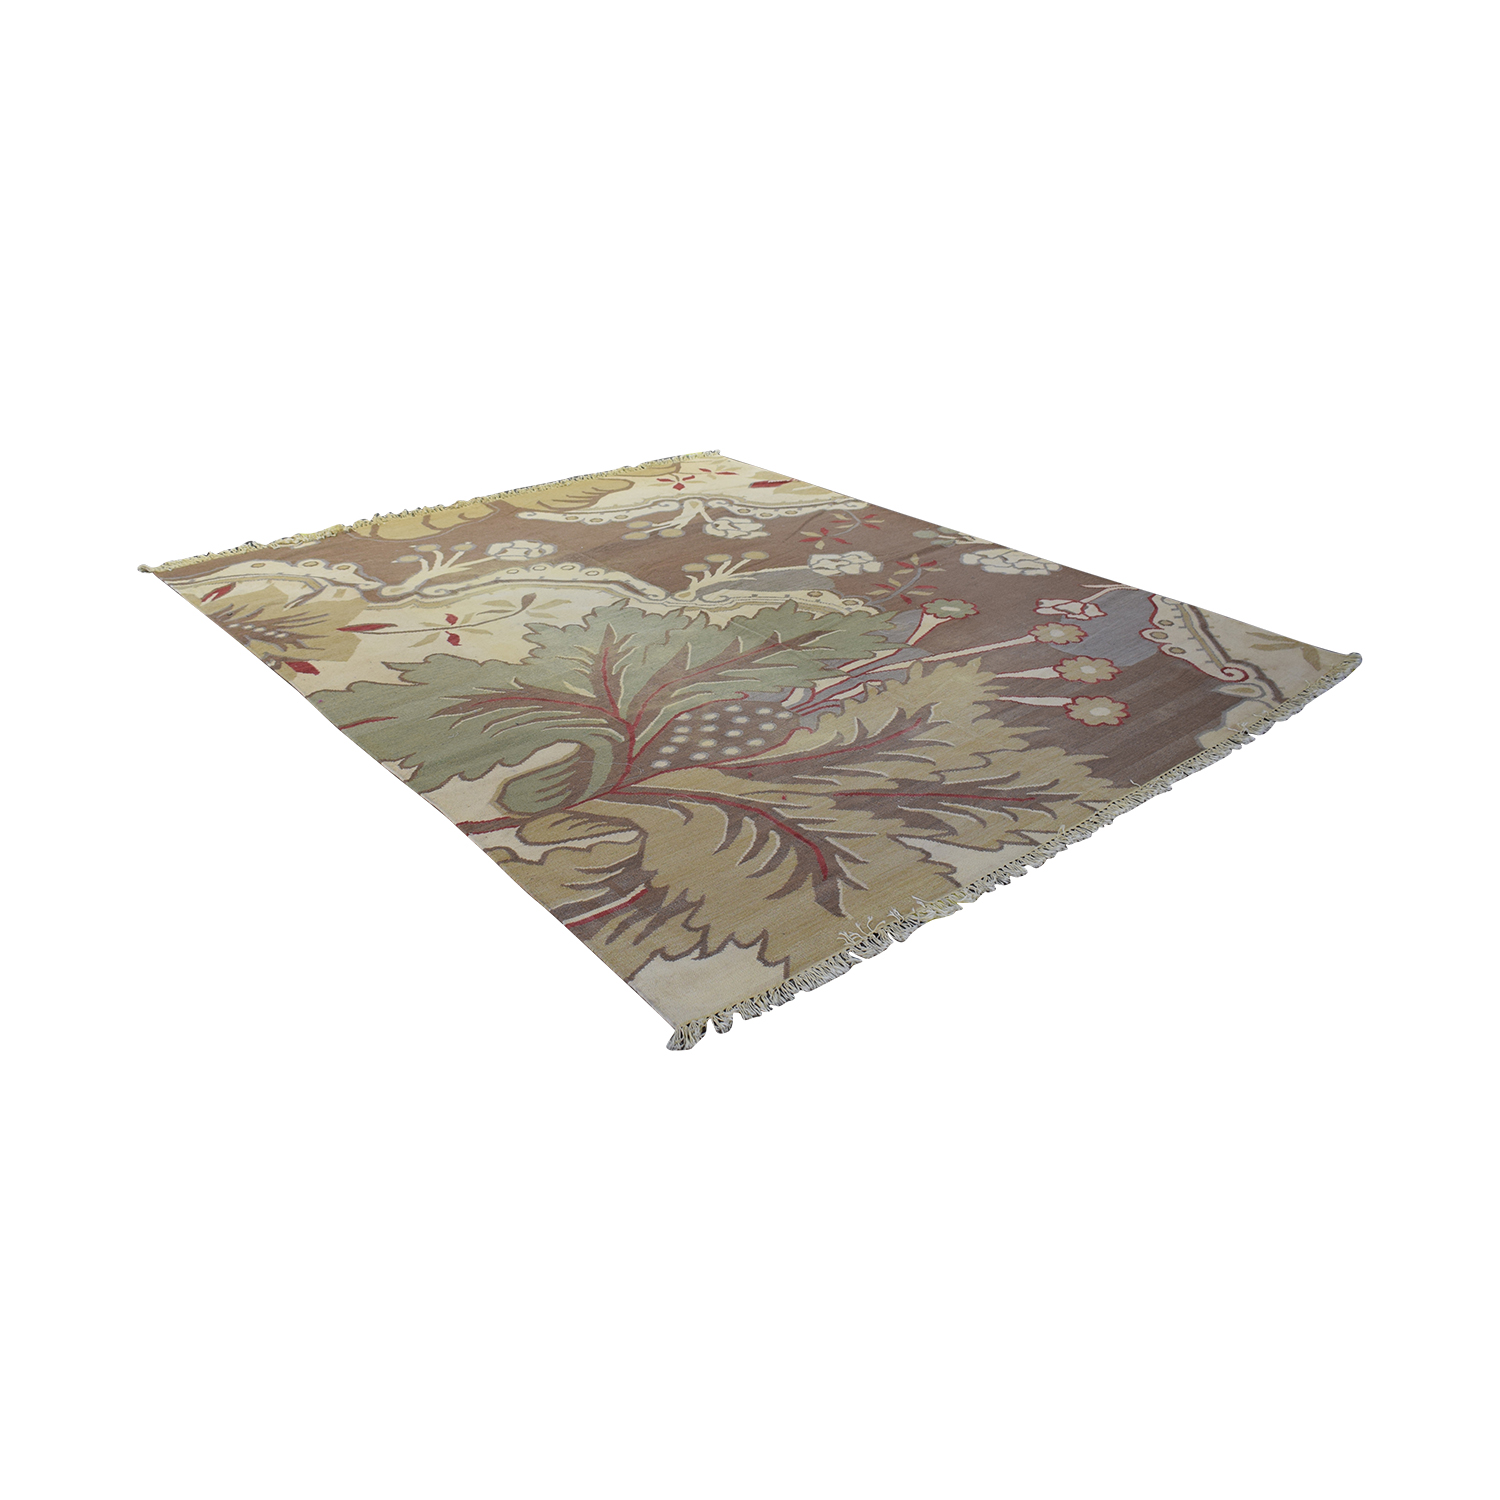 Floral Patterned Woven Rug used